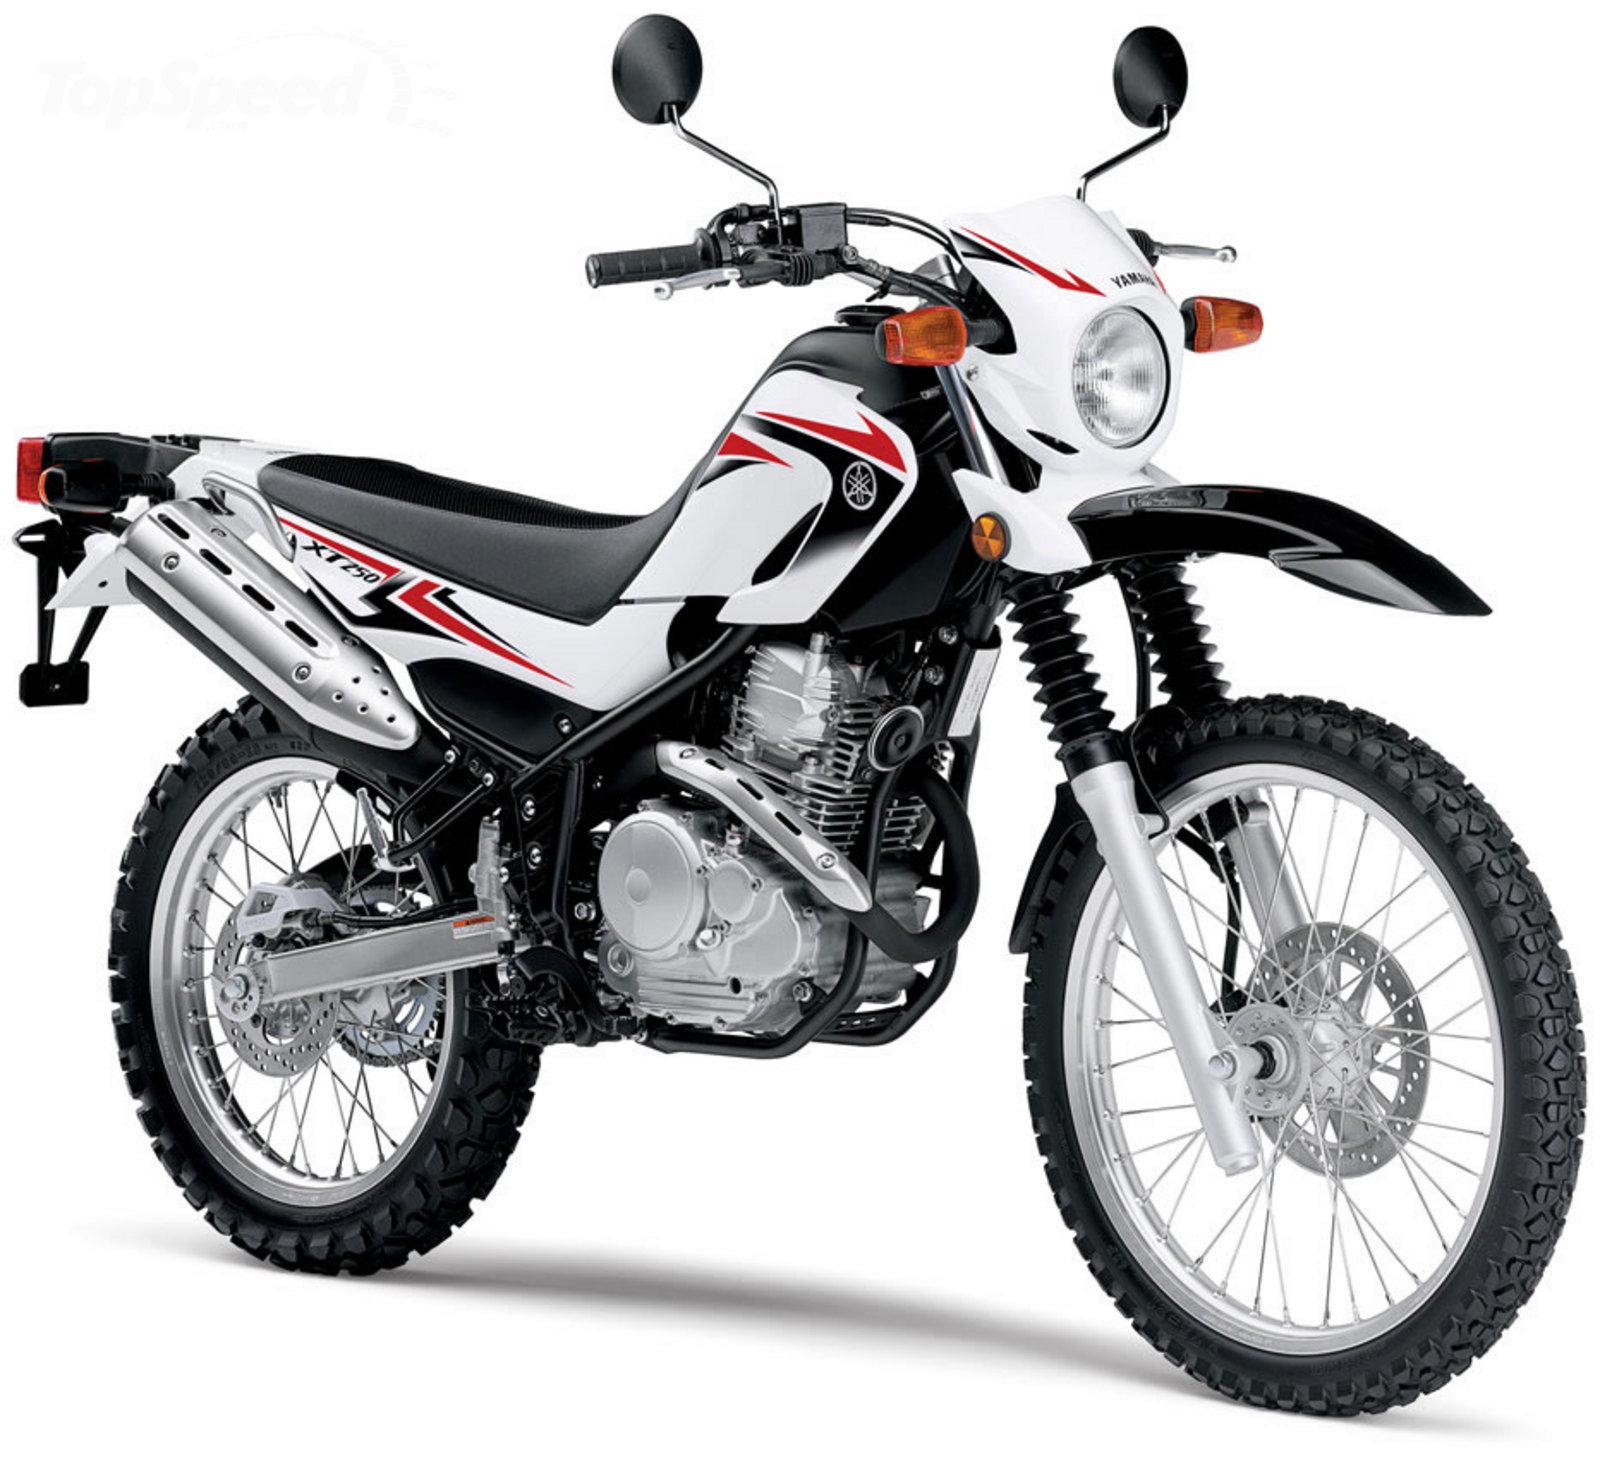 Motorcycle Review Top Speed: 2010 Yamaha XT250 Review